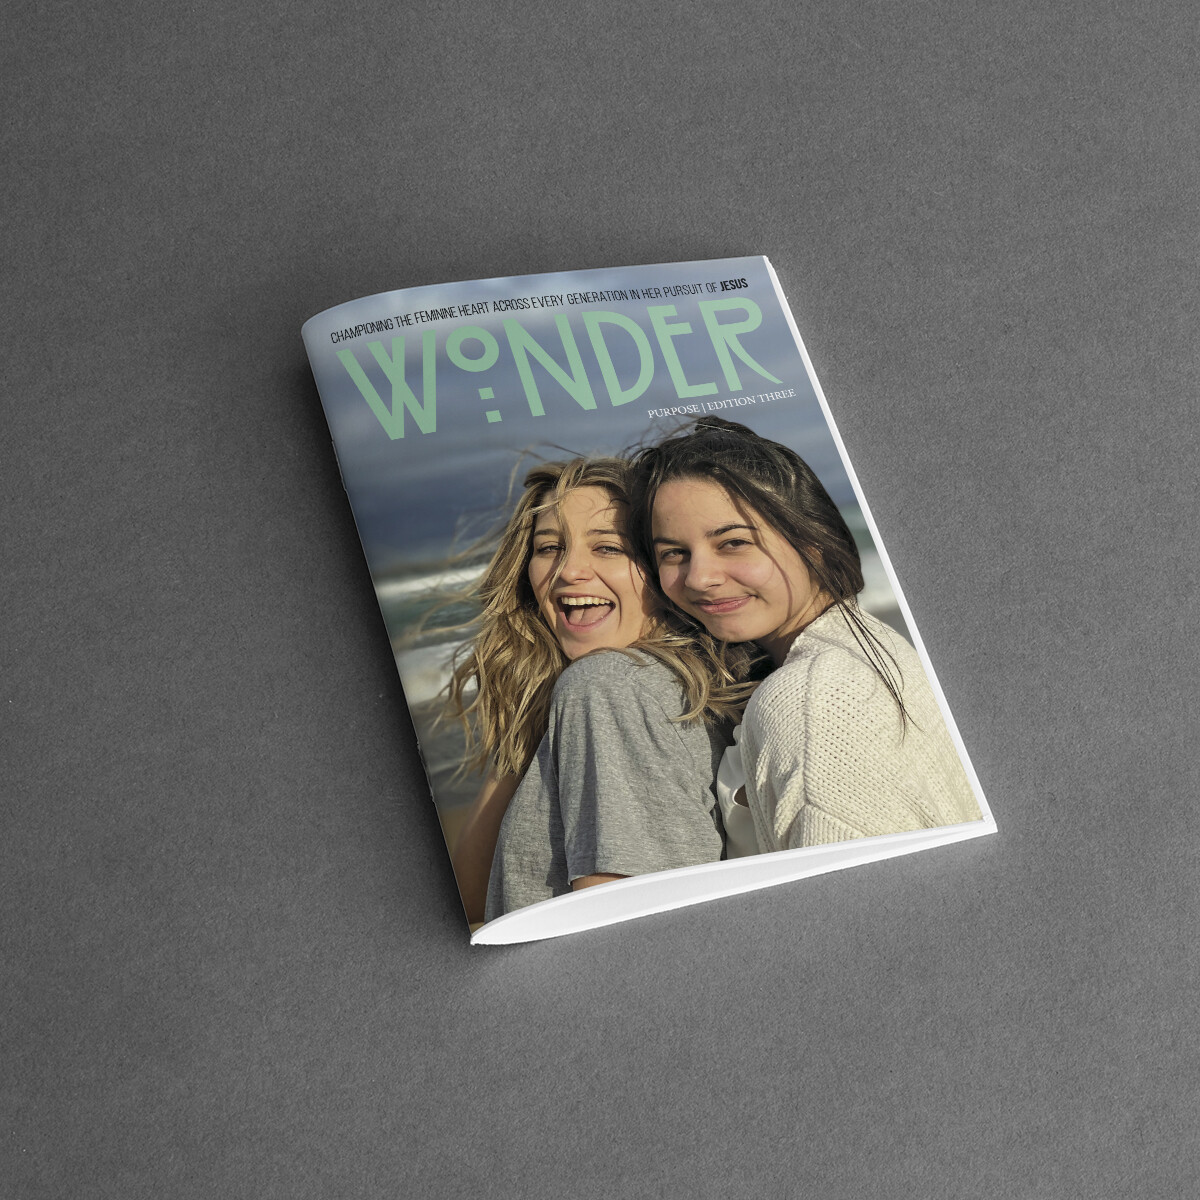 Wonder Magazine | Edition Three: Purpose